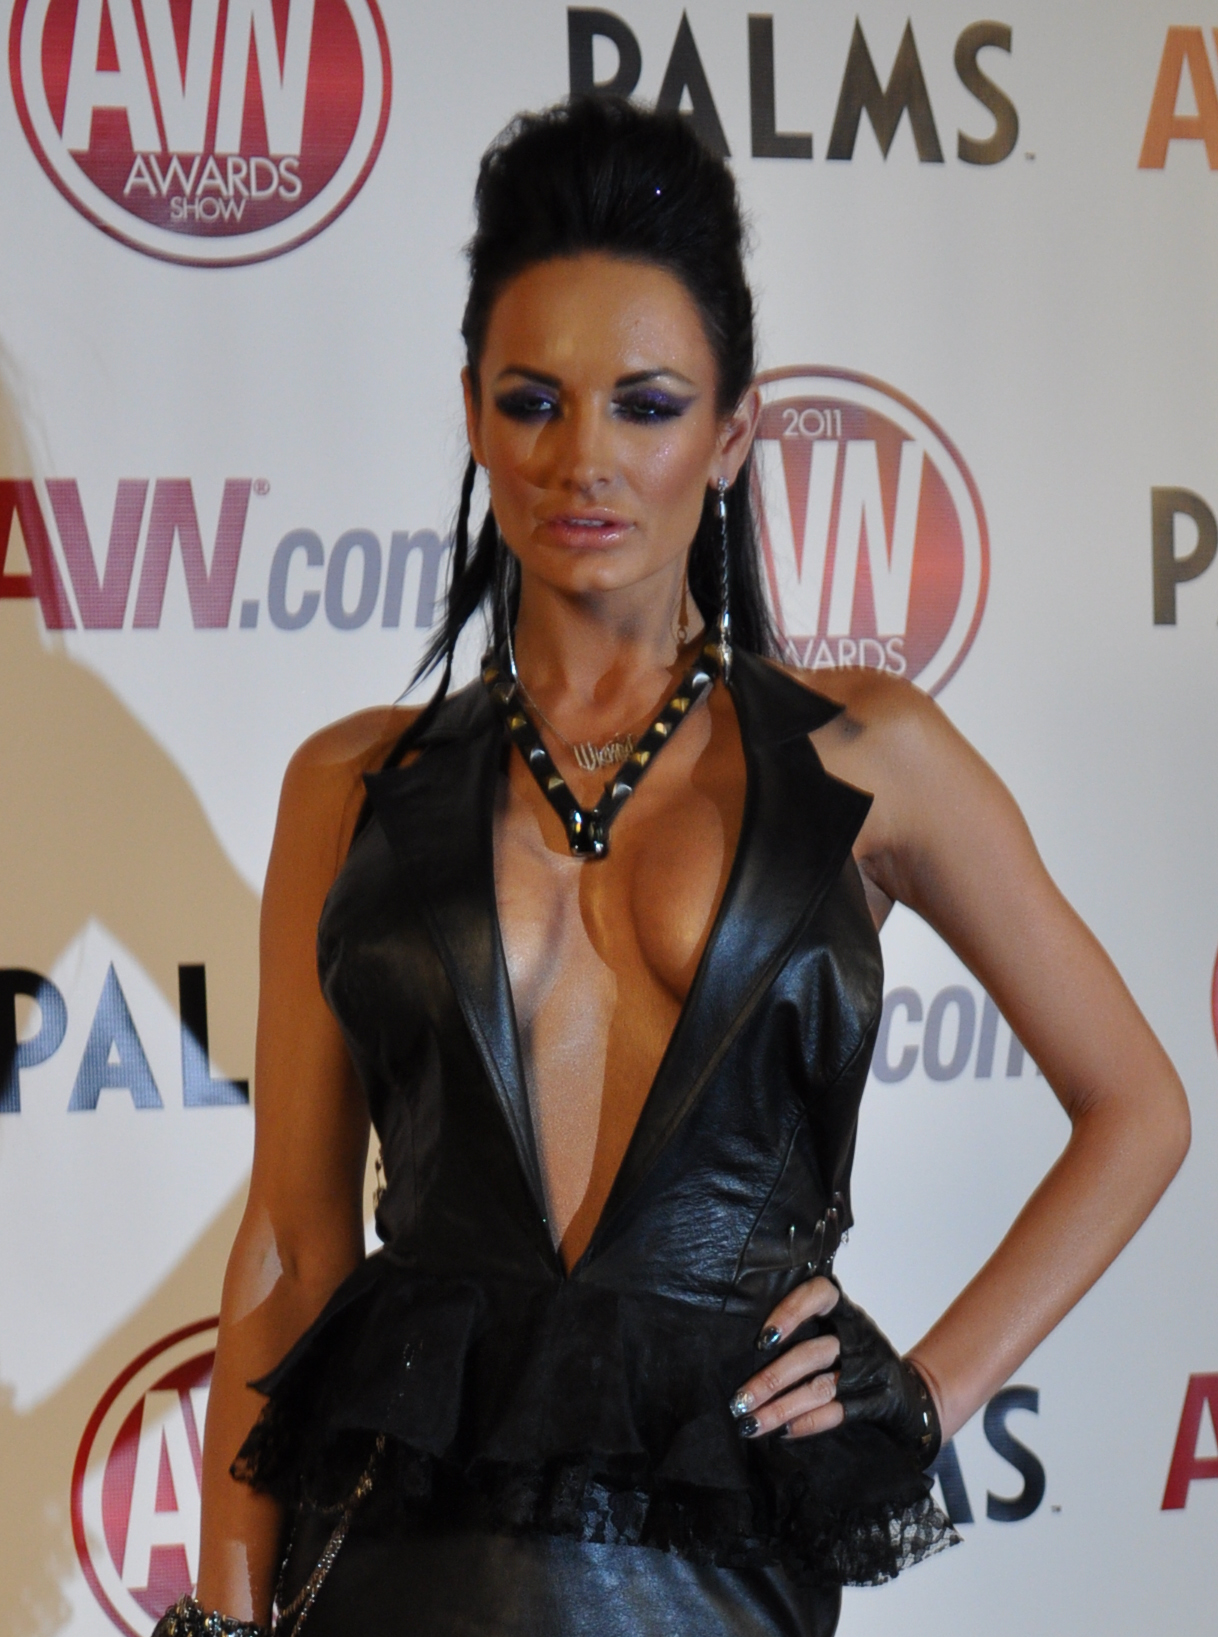 File Alektra Blue At Avn Awards Crop Wikimedia Commons Jpg 1218x1637 Boss